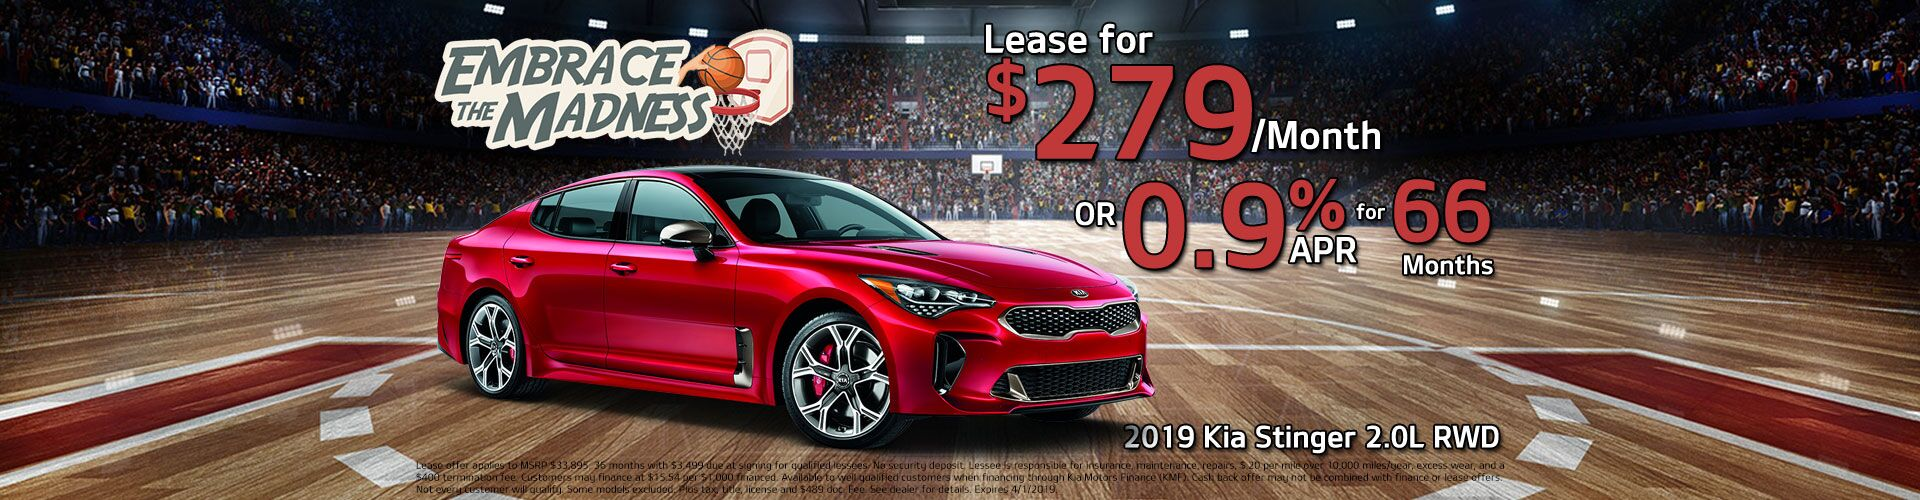 2019 Kia Stinger Holiday